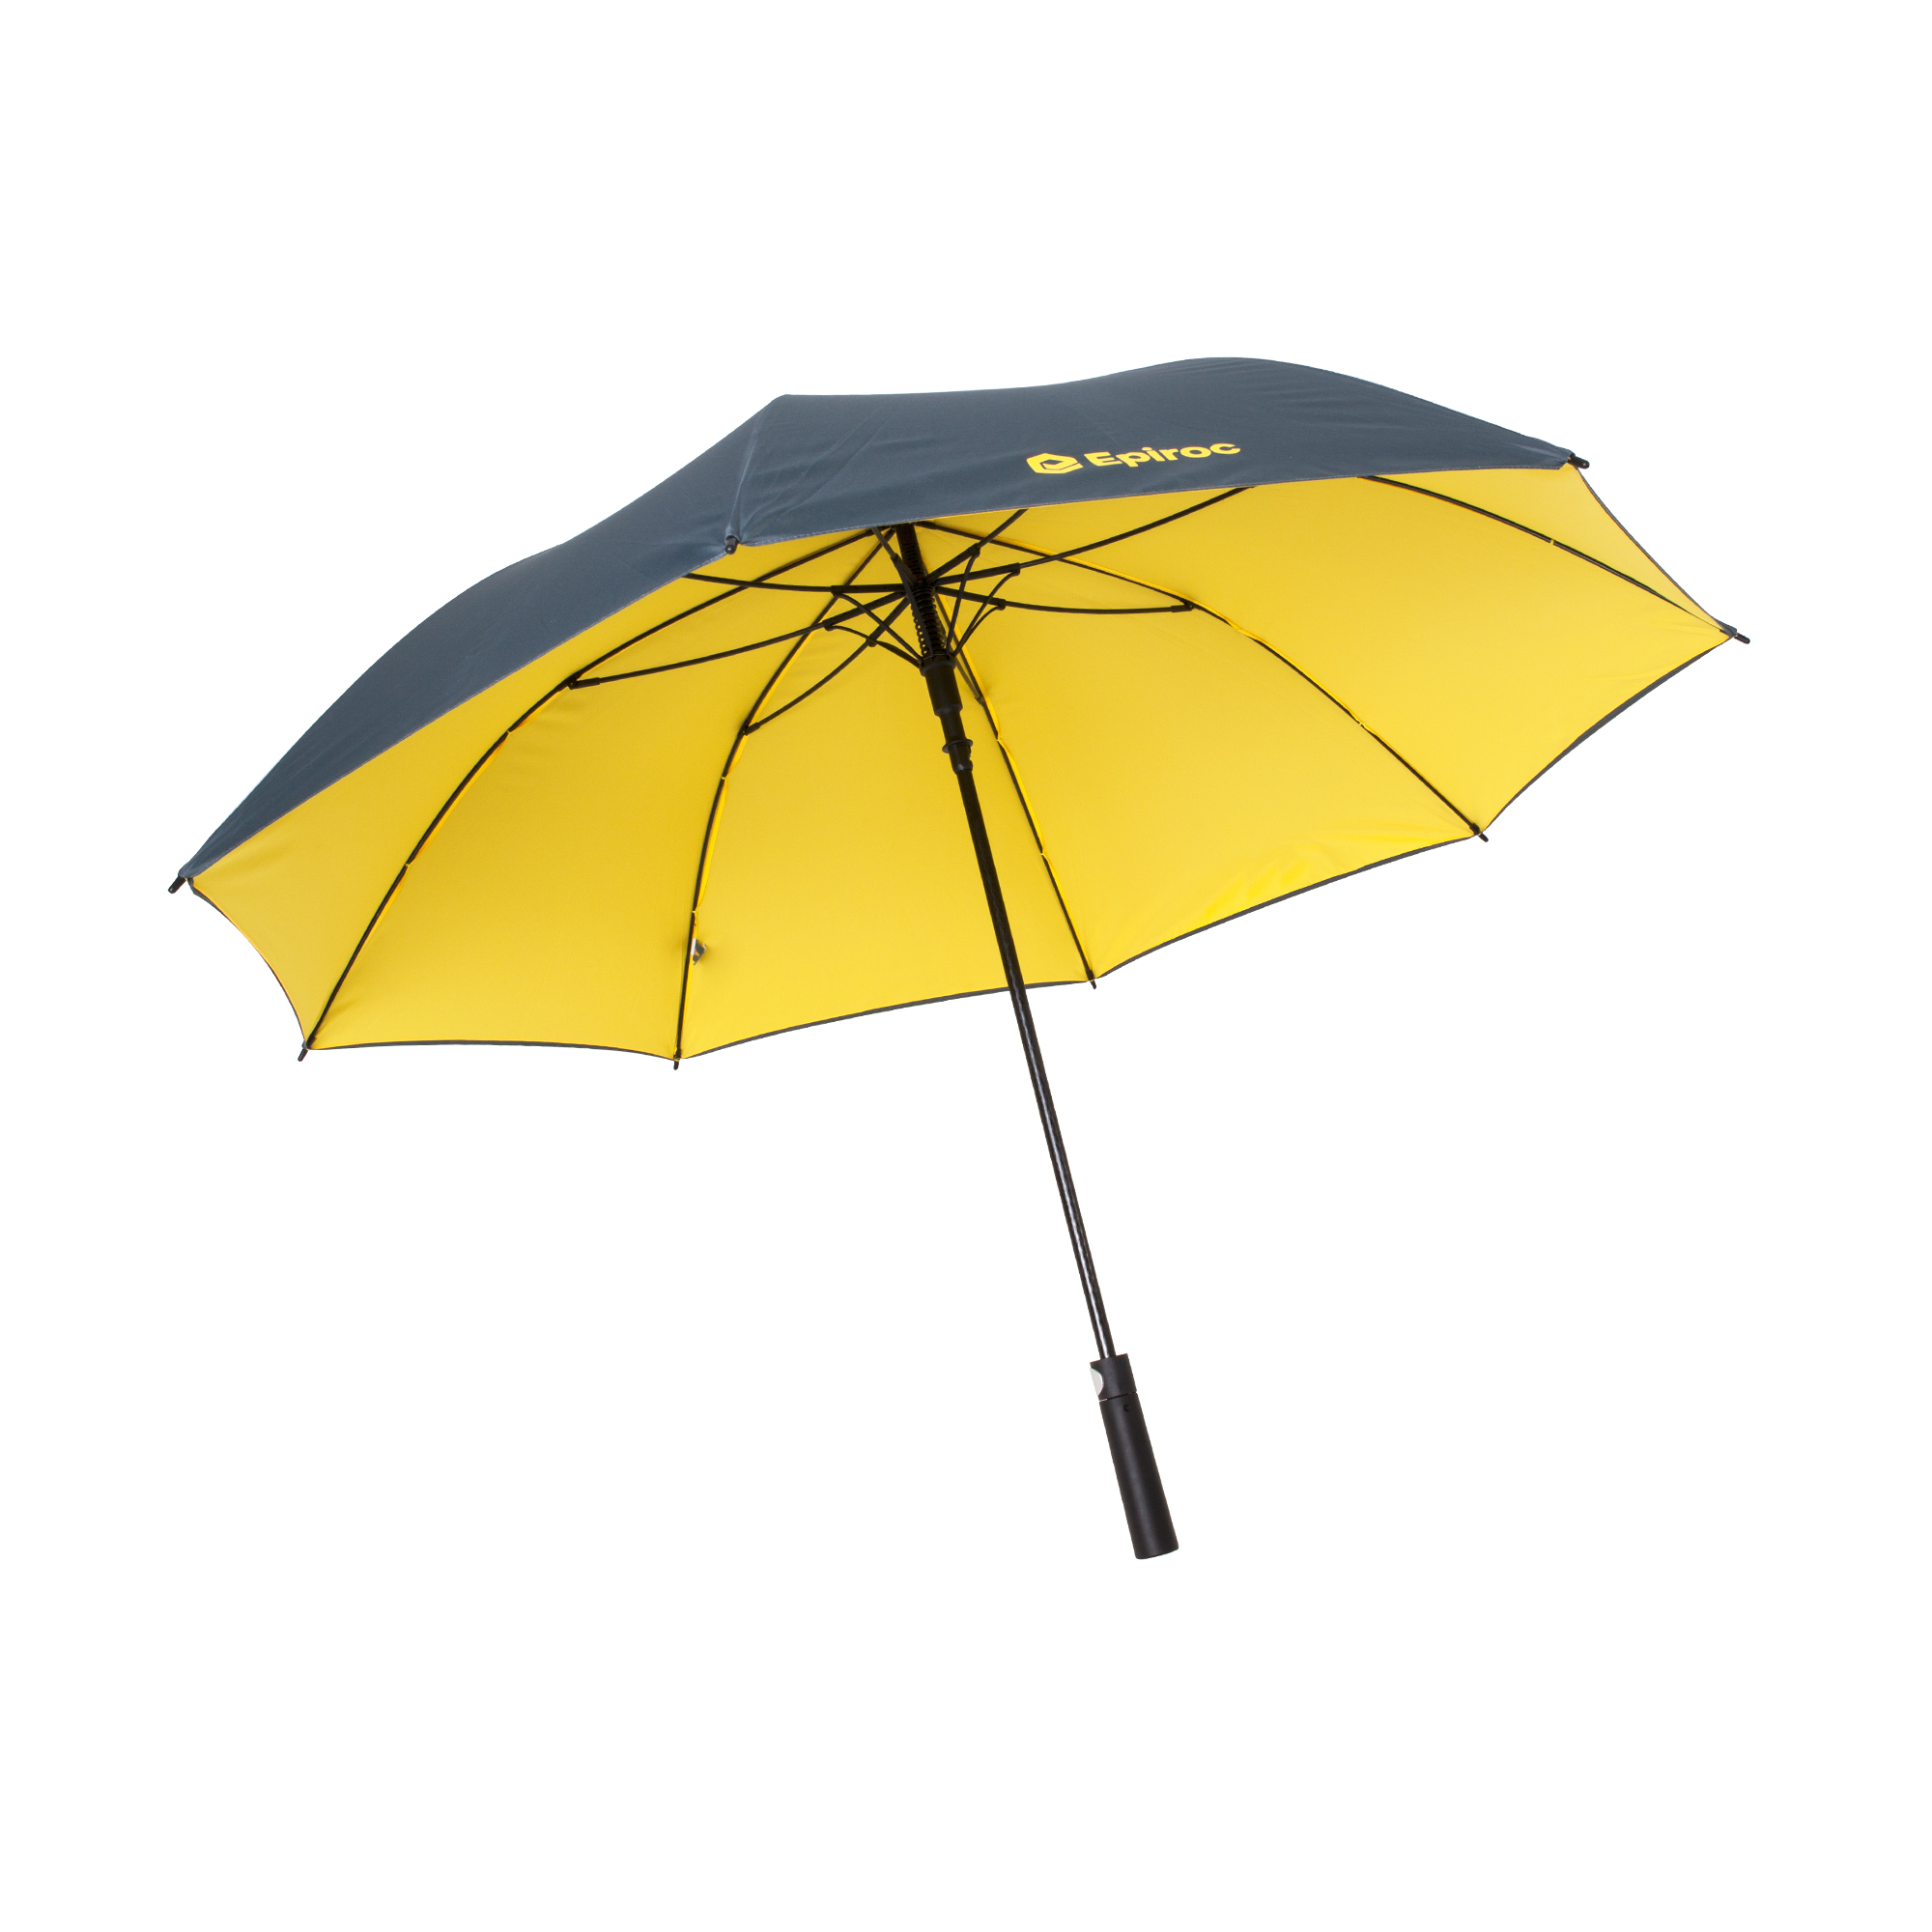 Solid and large umbrella made of fiber glass. Equipped with swift automatic opening and rubber finish on handle. Made out of recycled PET polyester material. Own pms colours on outer and inner fabric. Brand promise as rubber doming on handle.